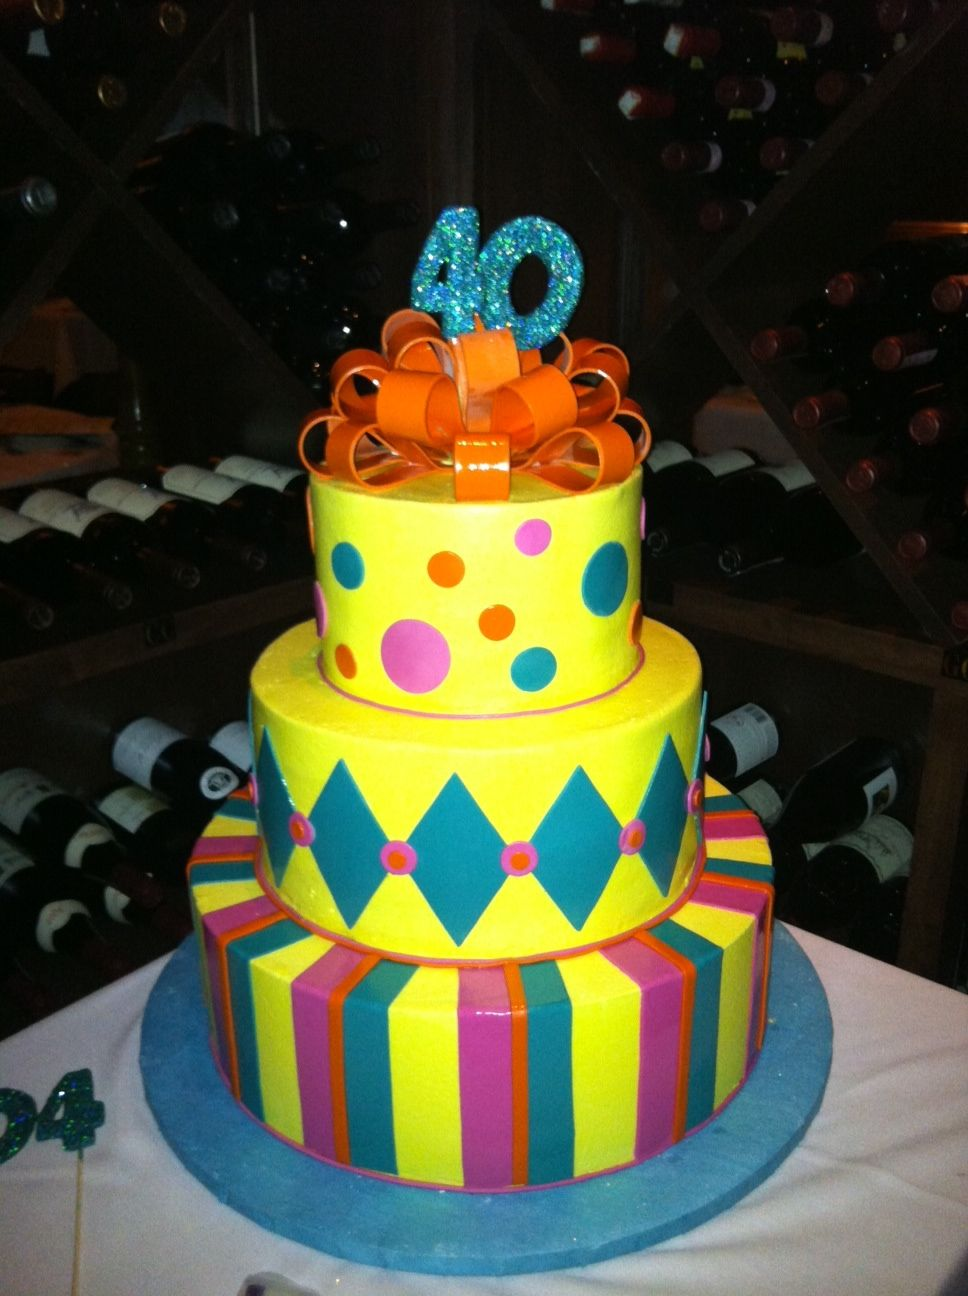 27+ 40th birthday cake for her near me ideas in 2021